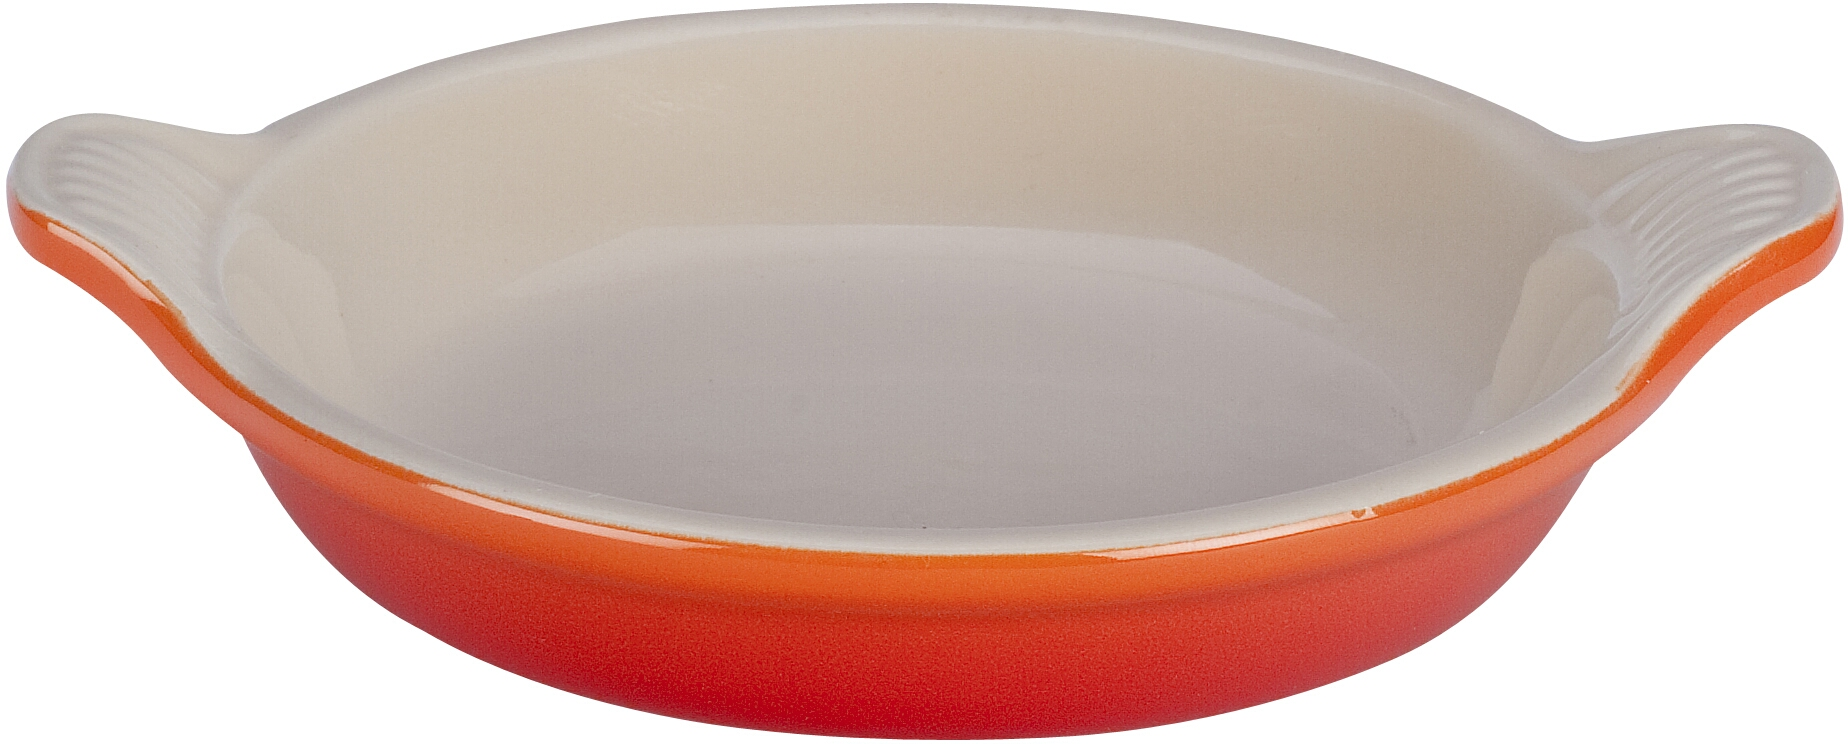 Le Creuset Flame Stoneware Creme Brulee Dish, 7 Ounce